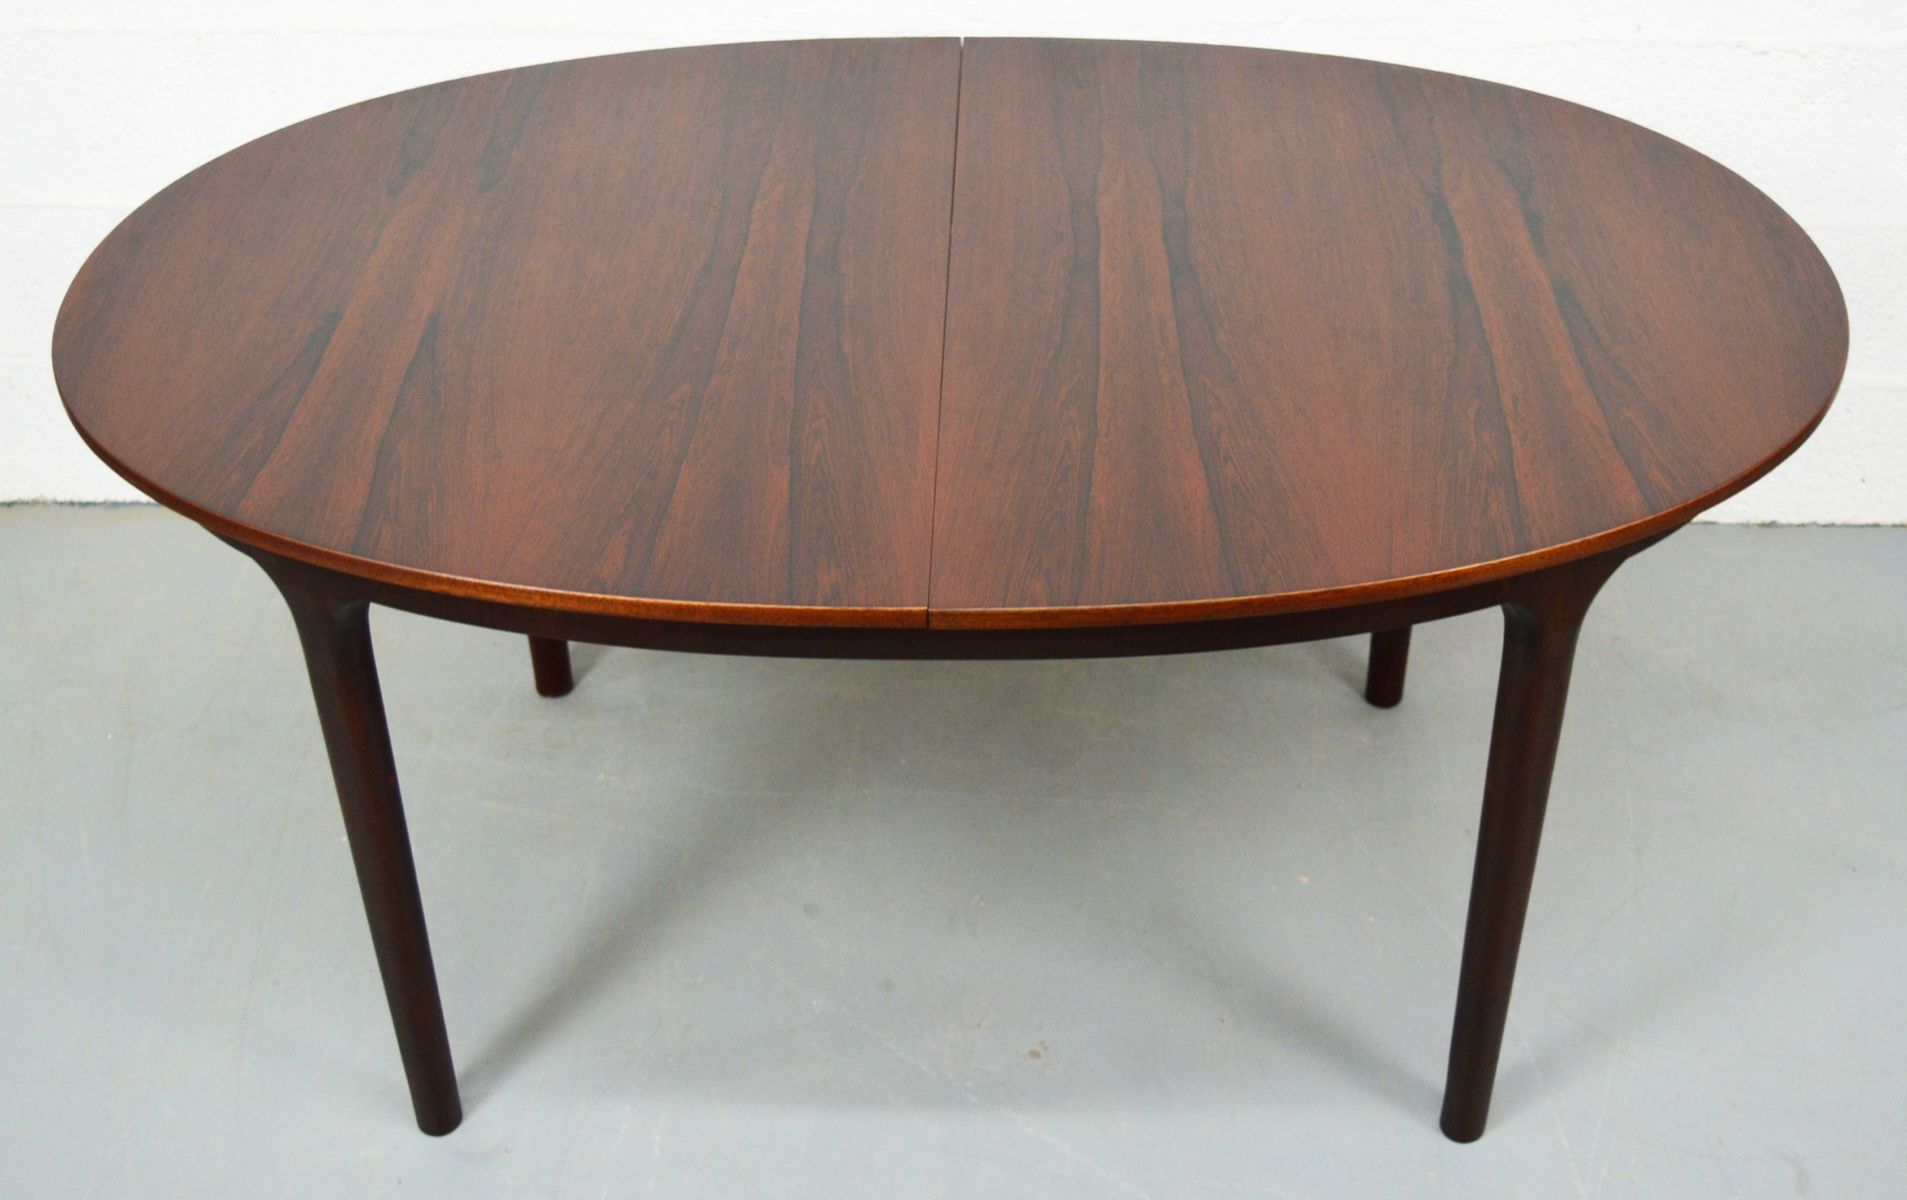 Rosewood Dining Table Mid Century Extendable Oval Rosewood Dining Table From Mcintosh